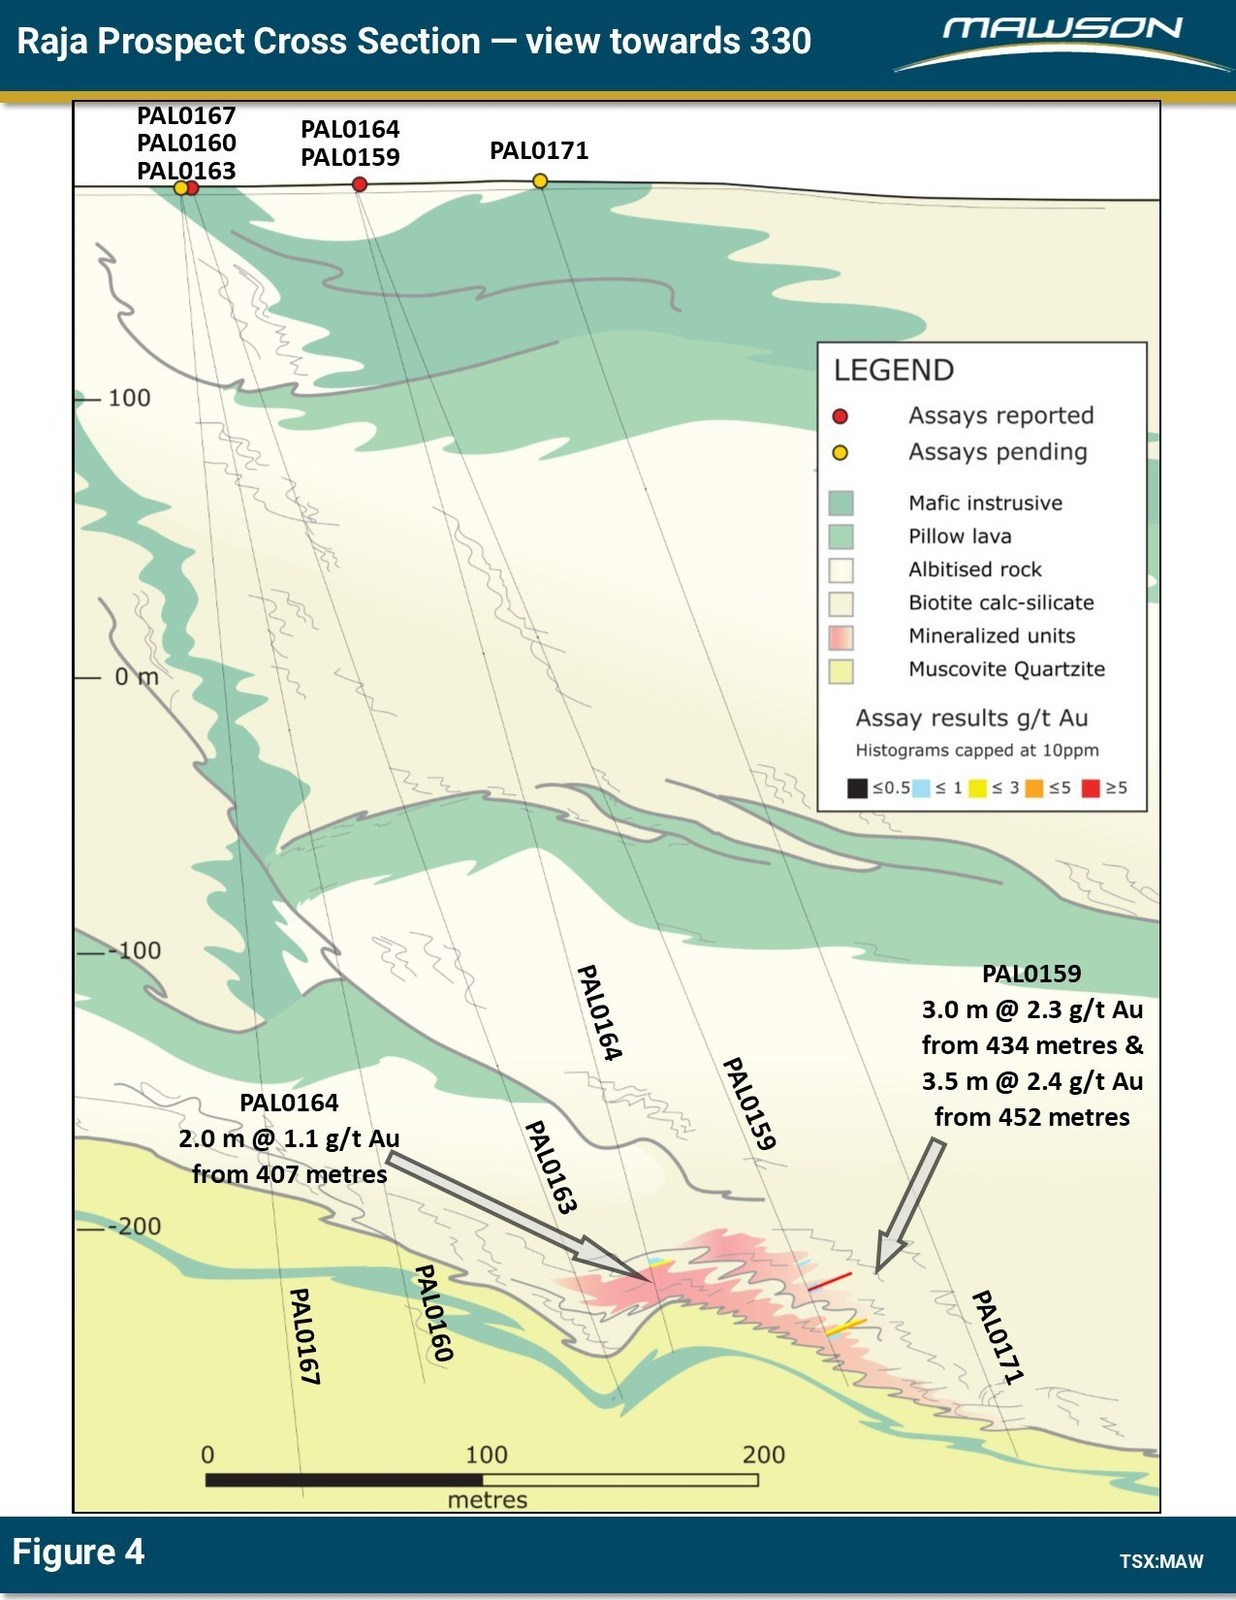 Figure 4: Cross section at Raja prospect showing location of reported drill holes PAL0164 and PAL0159.